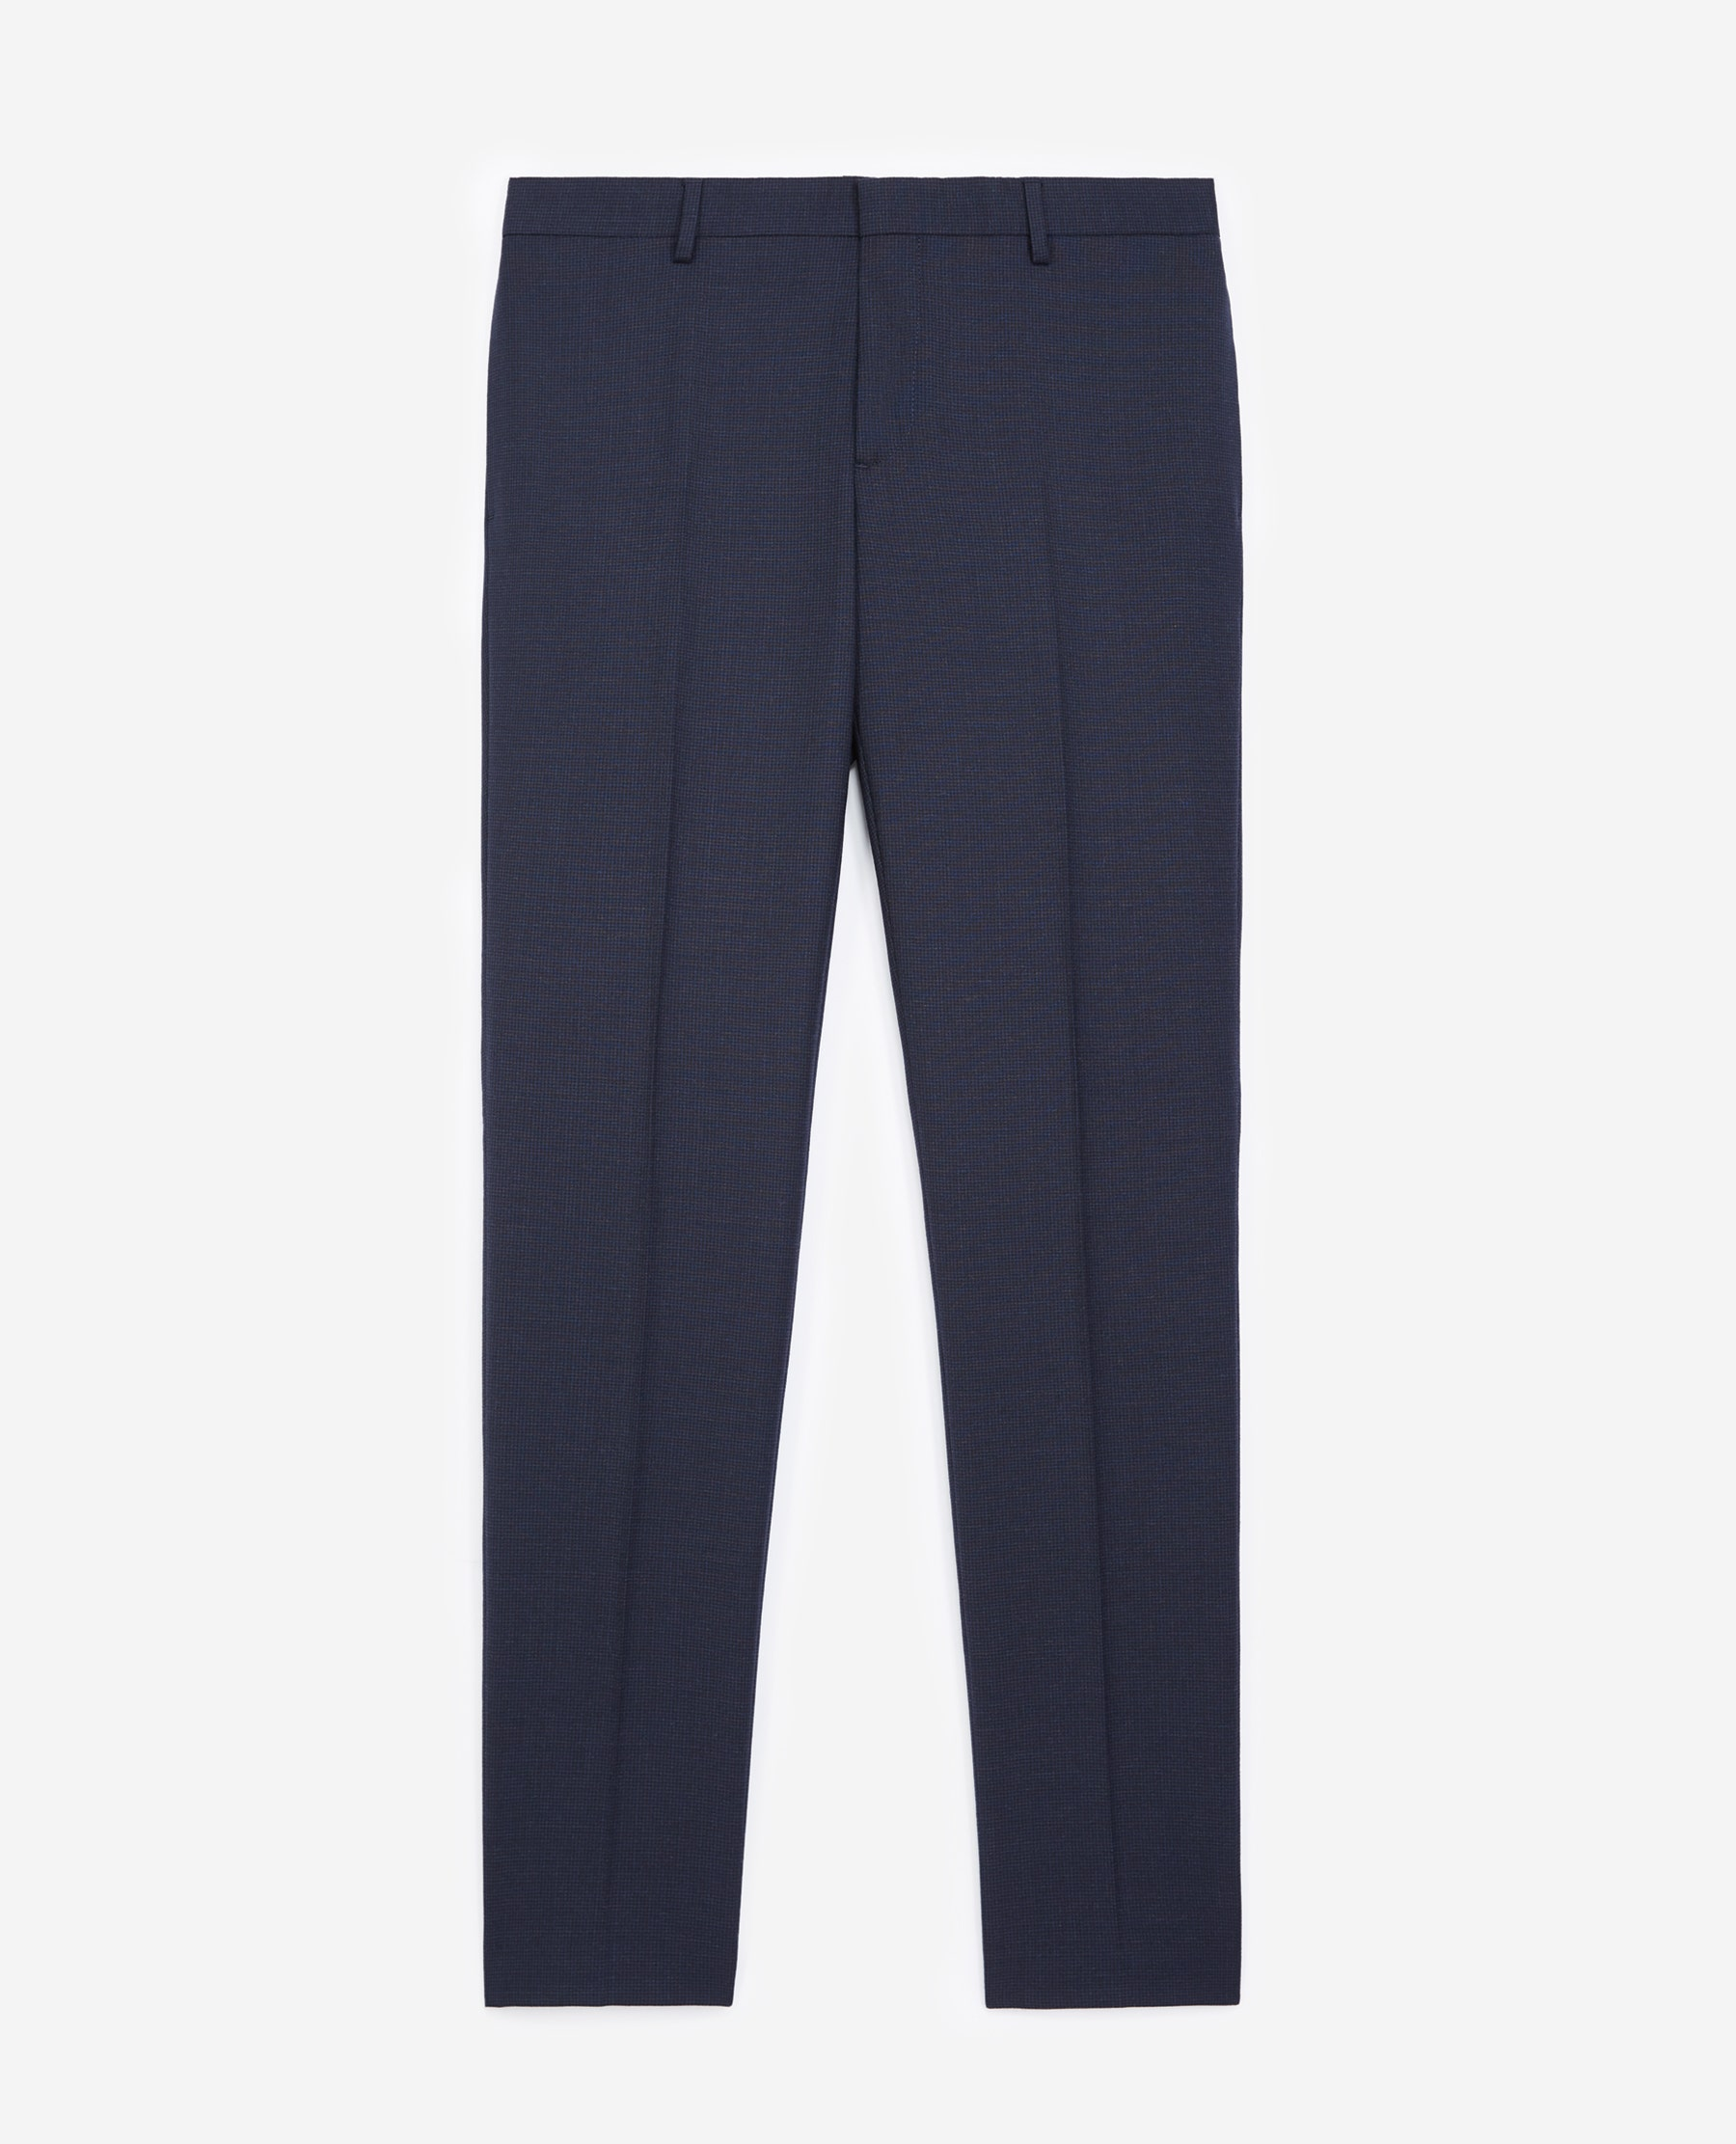 Pantalon costume laine bleu marine - The Kooples - Modalova